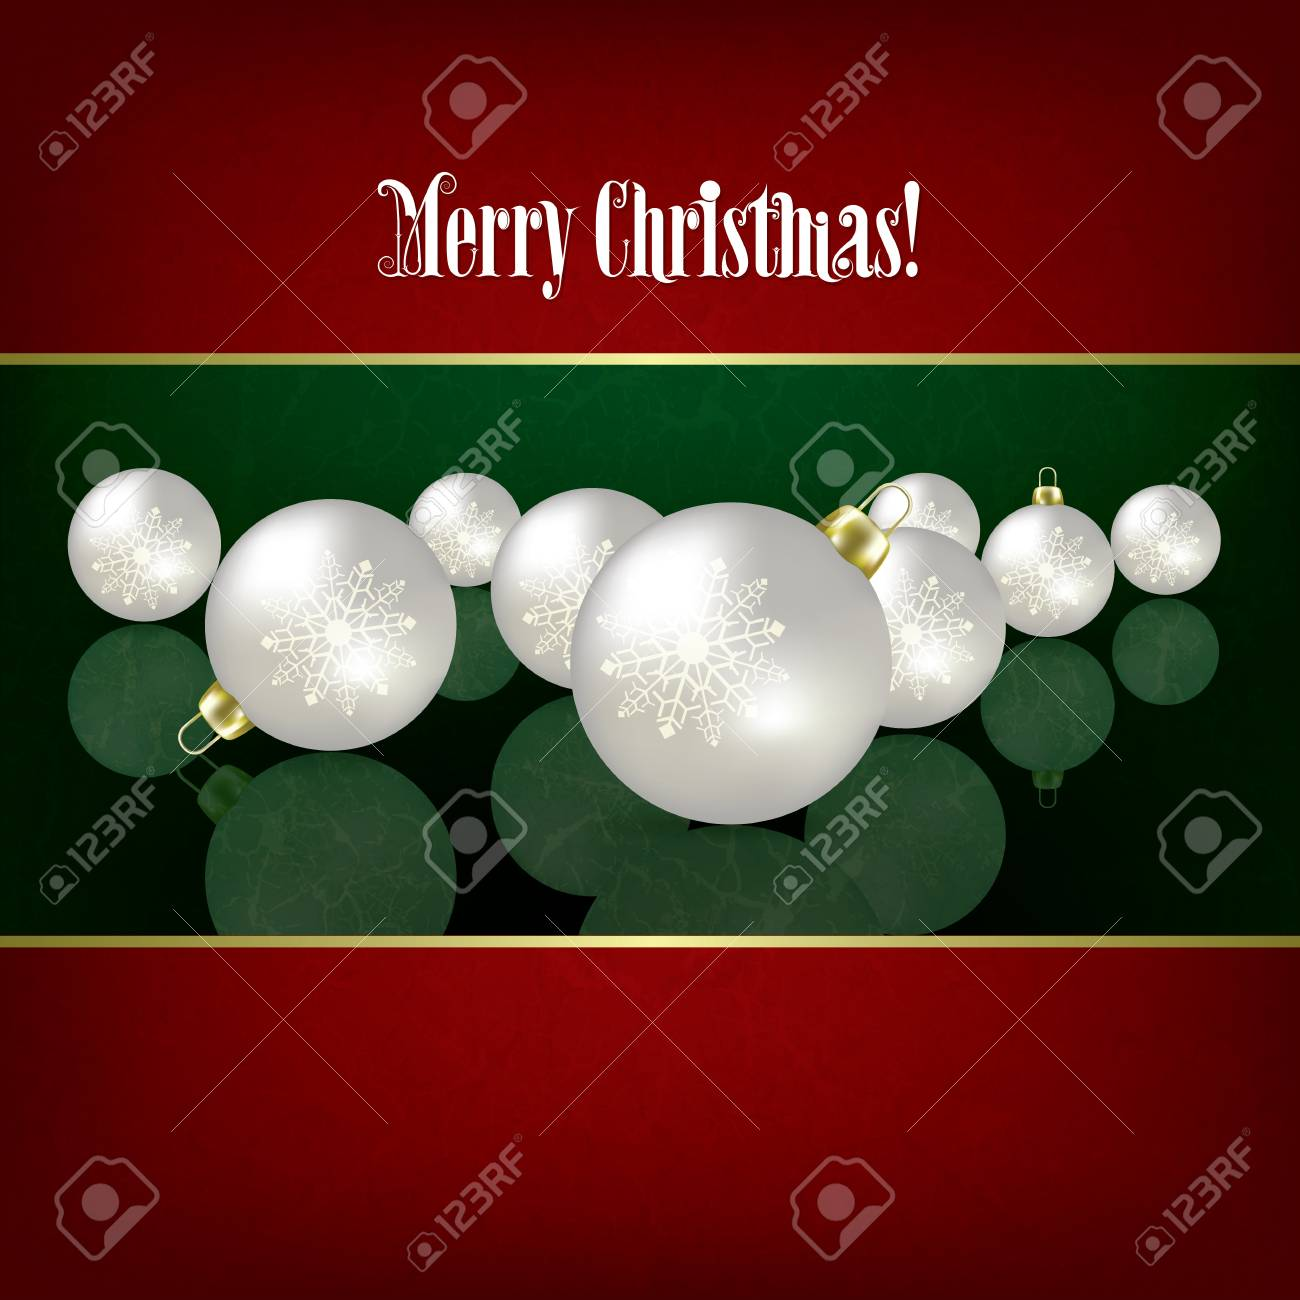 Christmas grunge background with white decorations on green Stock Vector - 15906682